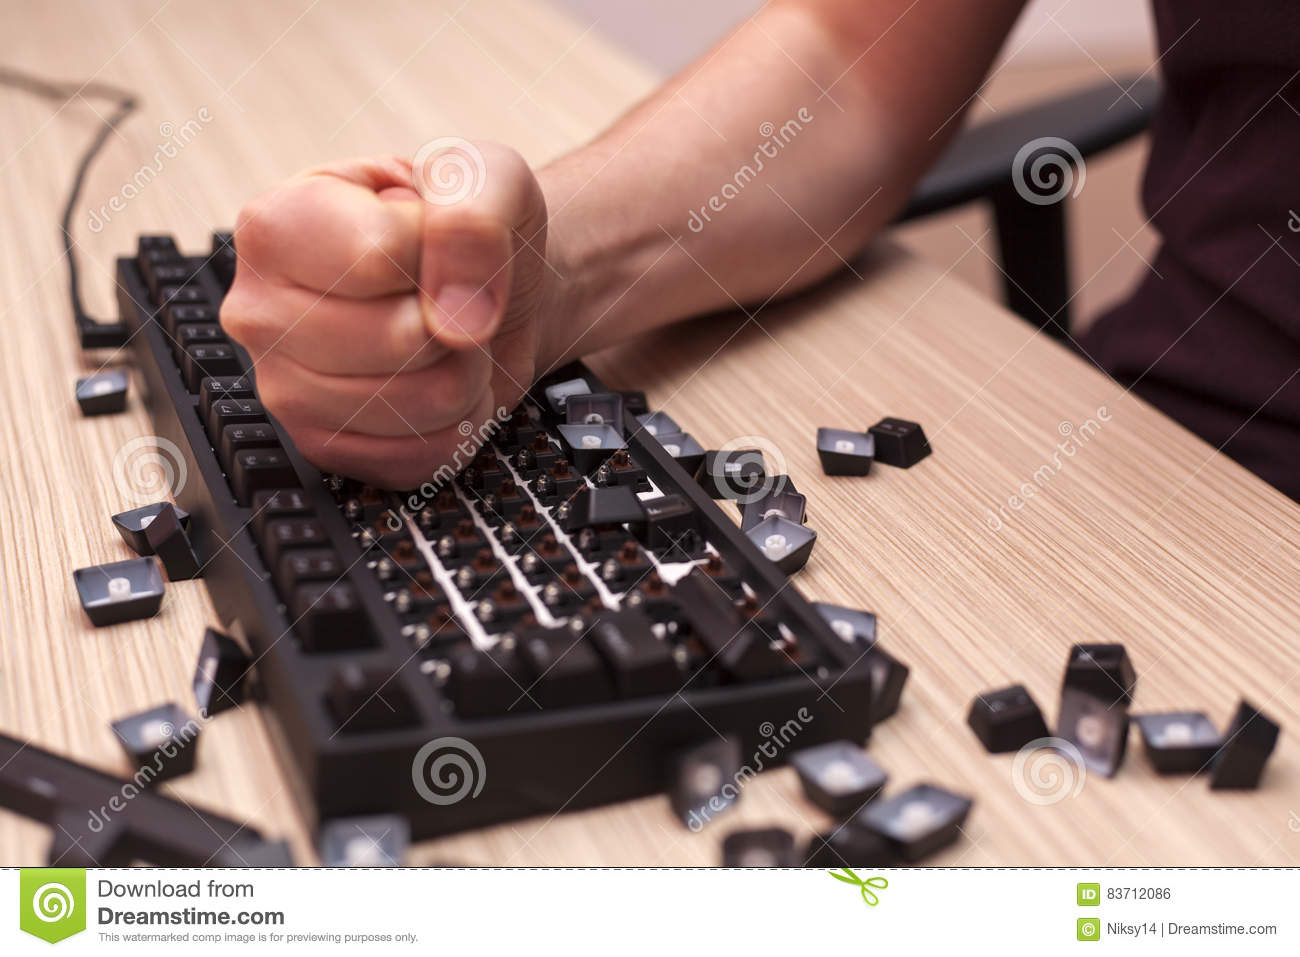 Man decisively destroys a mechanical computer keyboard in rage using one fist